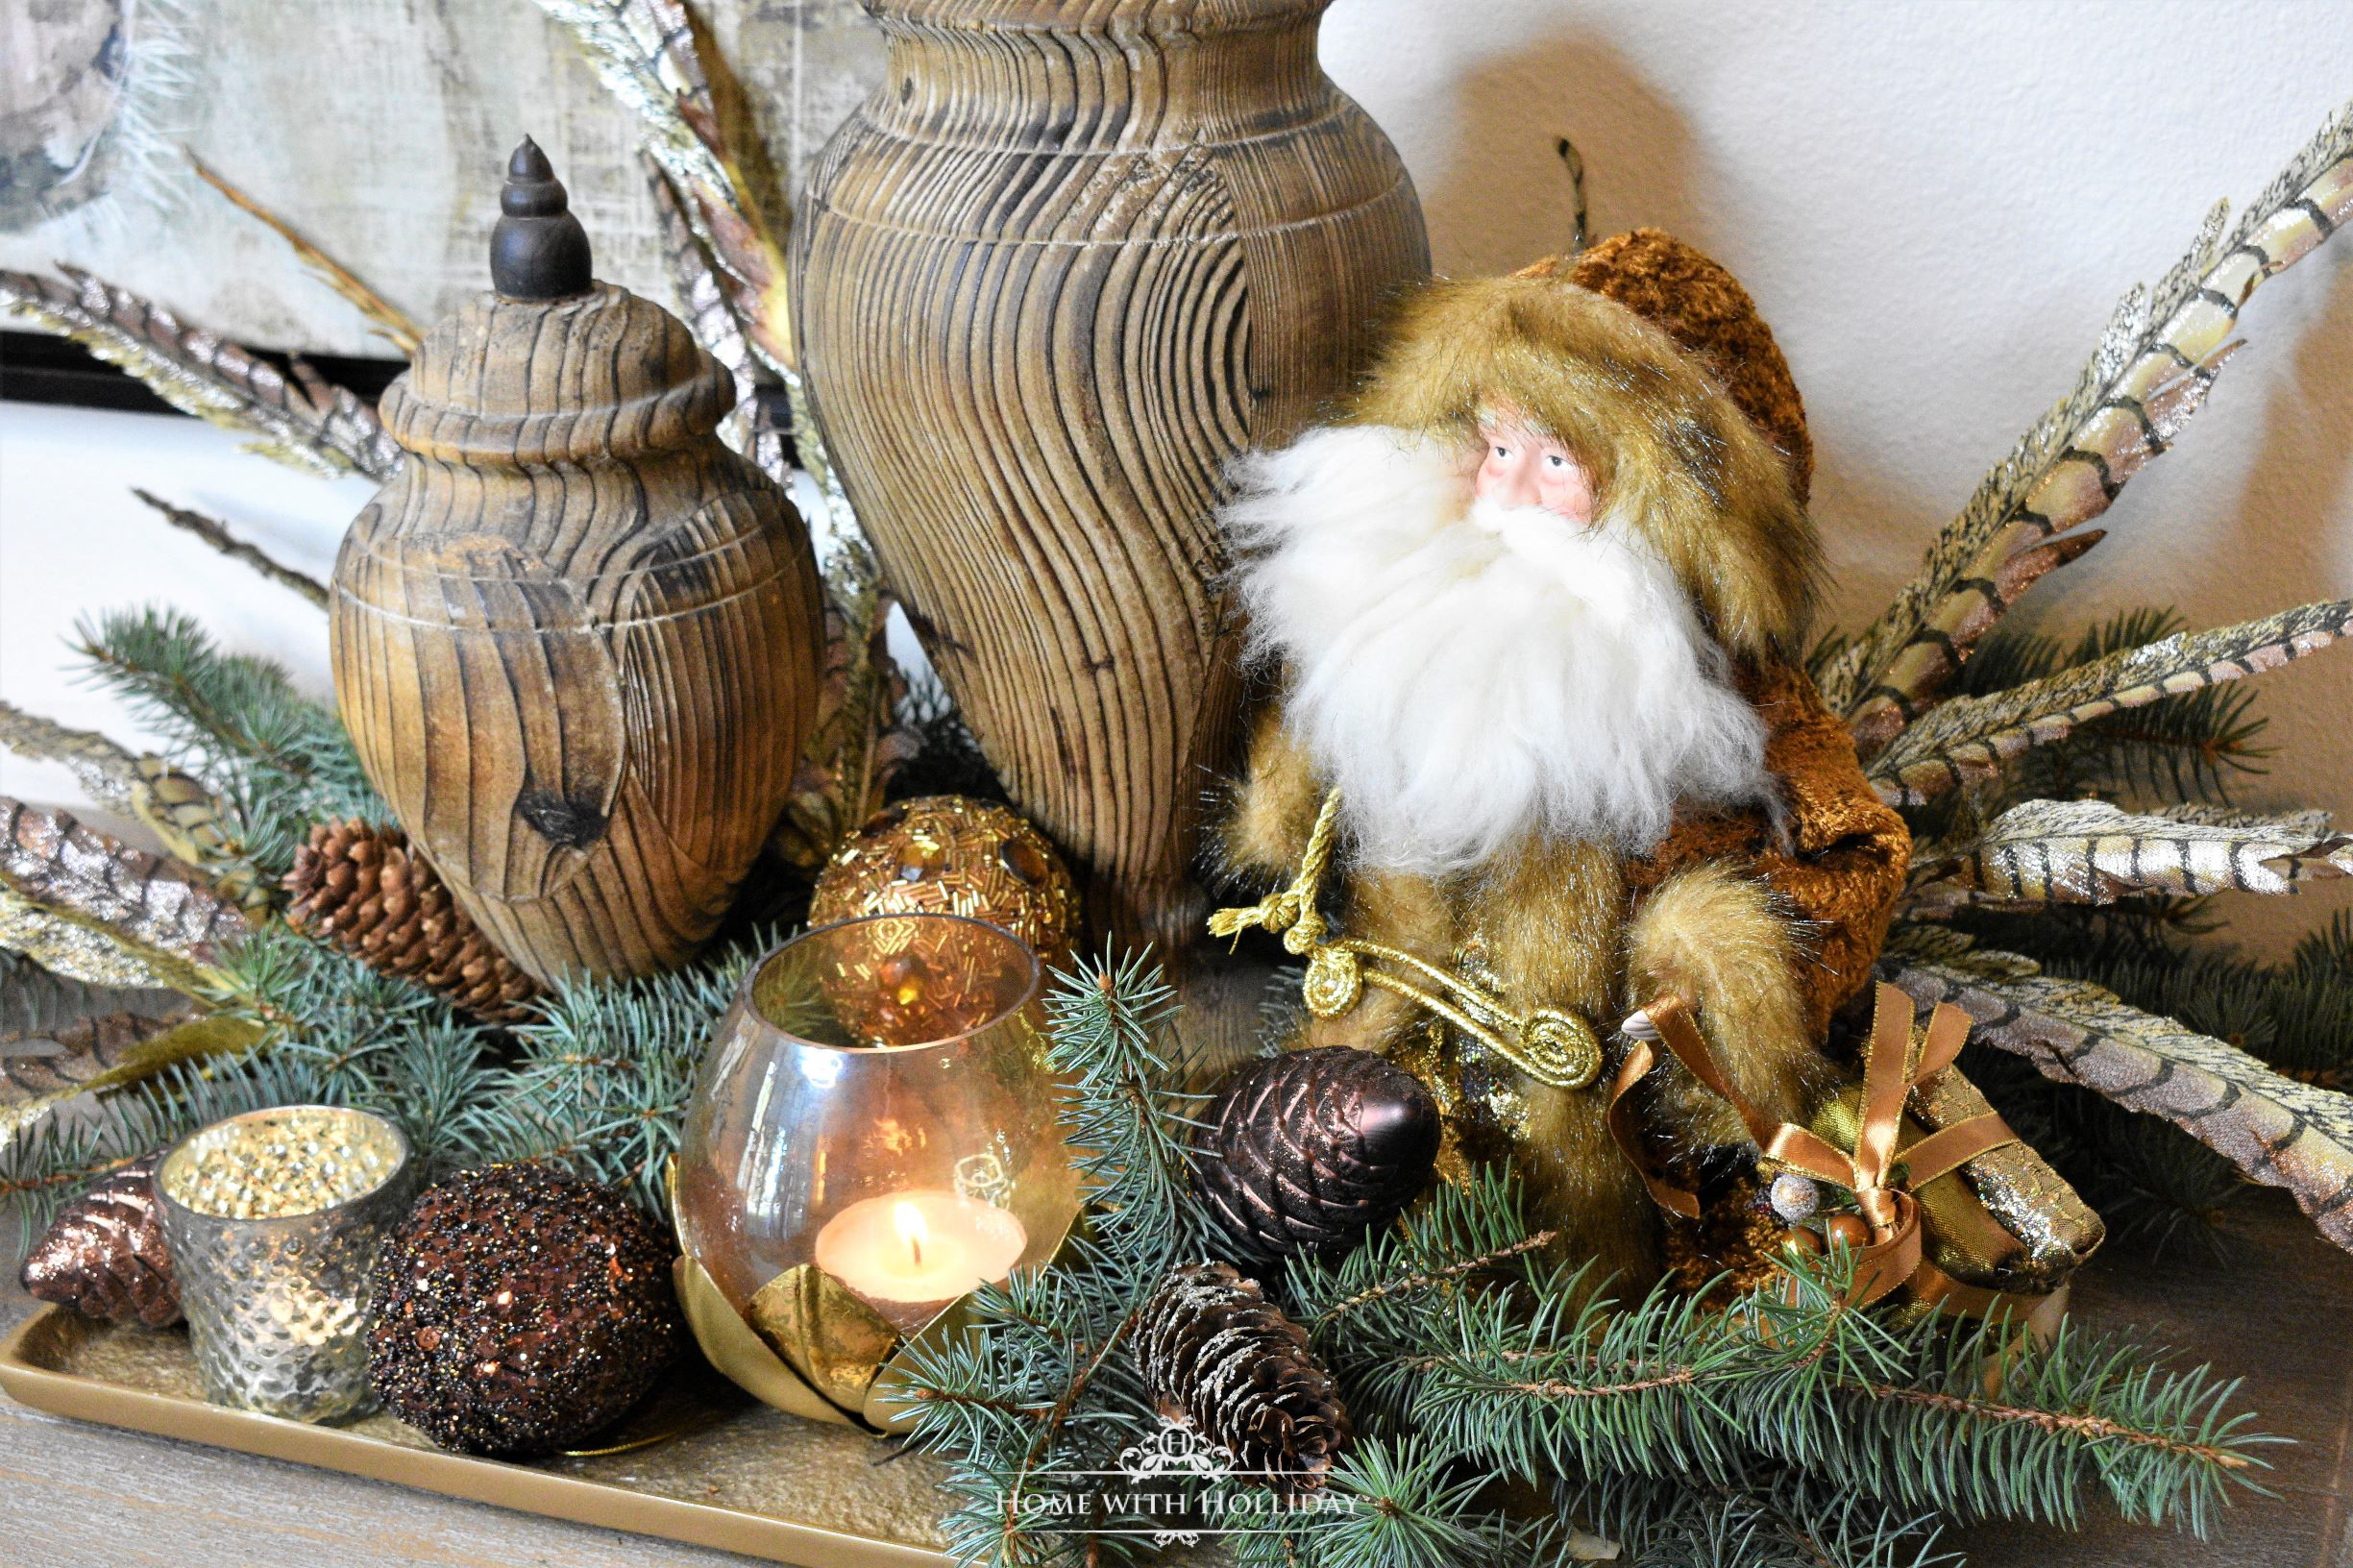 Decorating a Tray for Christmas 6 Ways - Copper Fur Santa - Home with Holliday